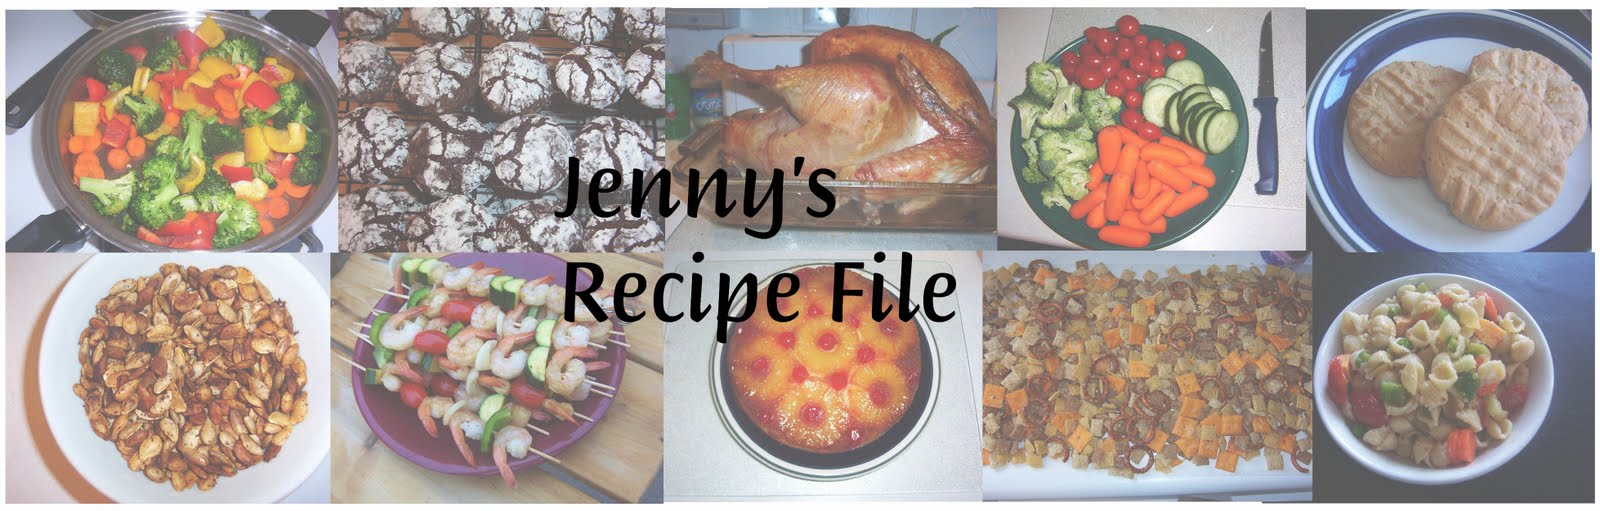 Jenny's Recipe File